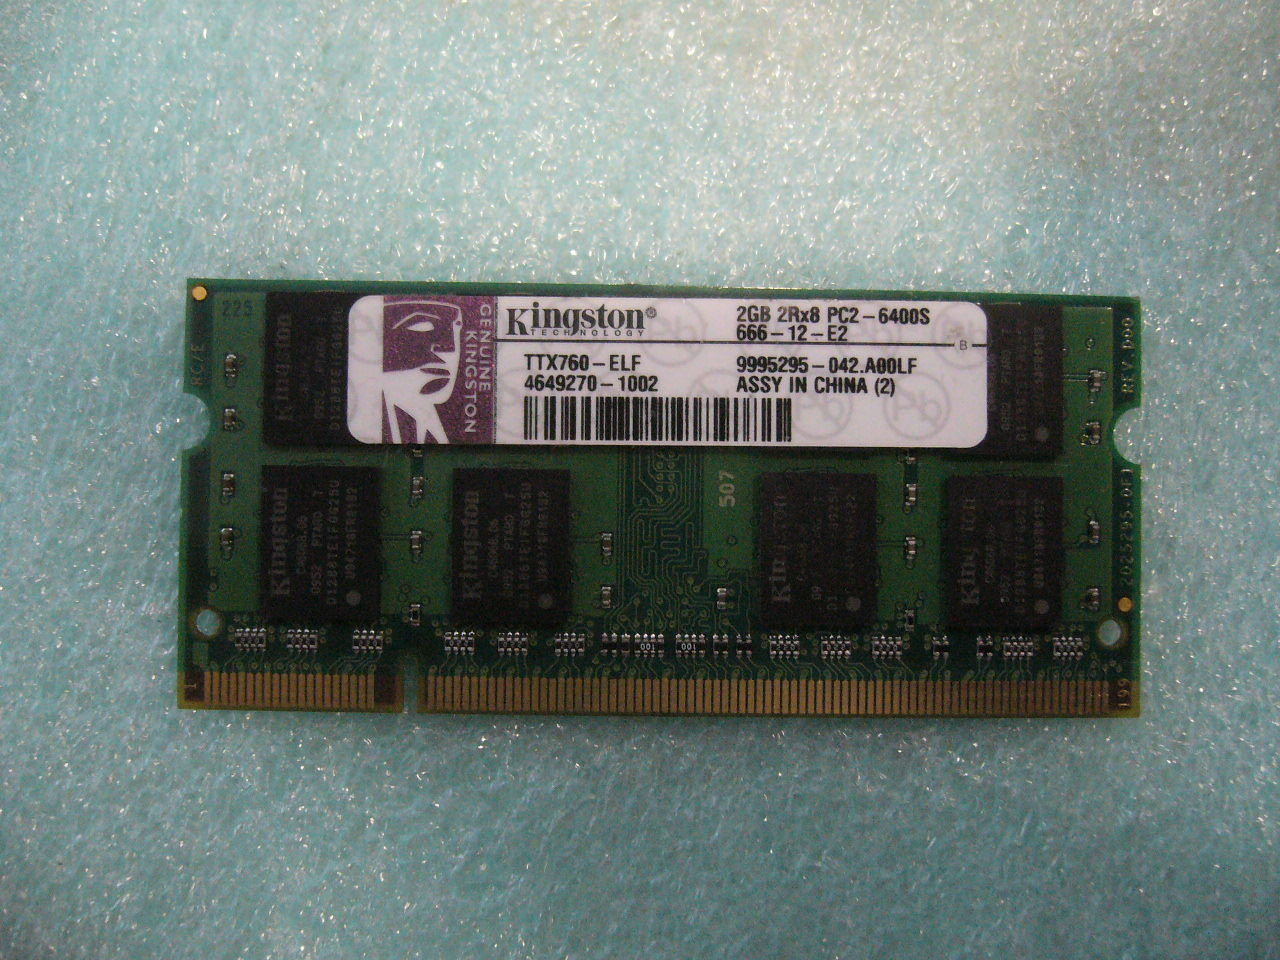 QTY 1x 2GB Kingston DDR2 PC2-6400S 200-pins SO-DIMM for laptop TTX760-ELF